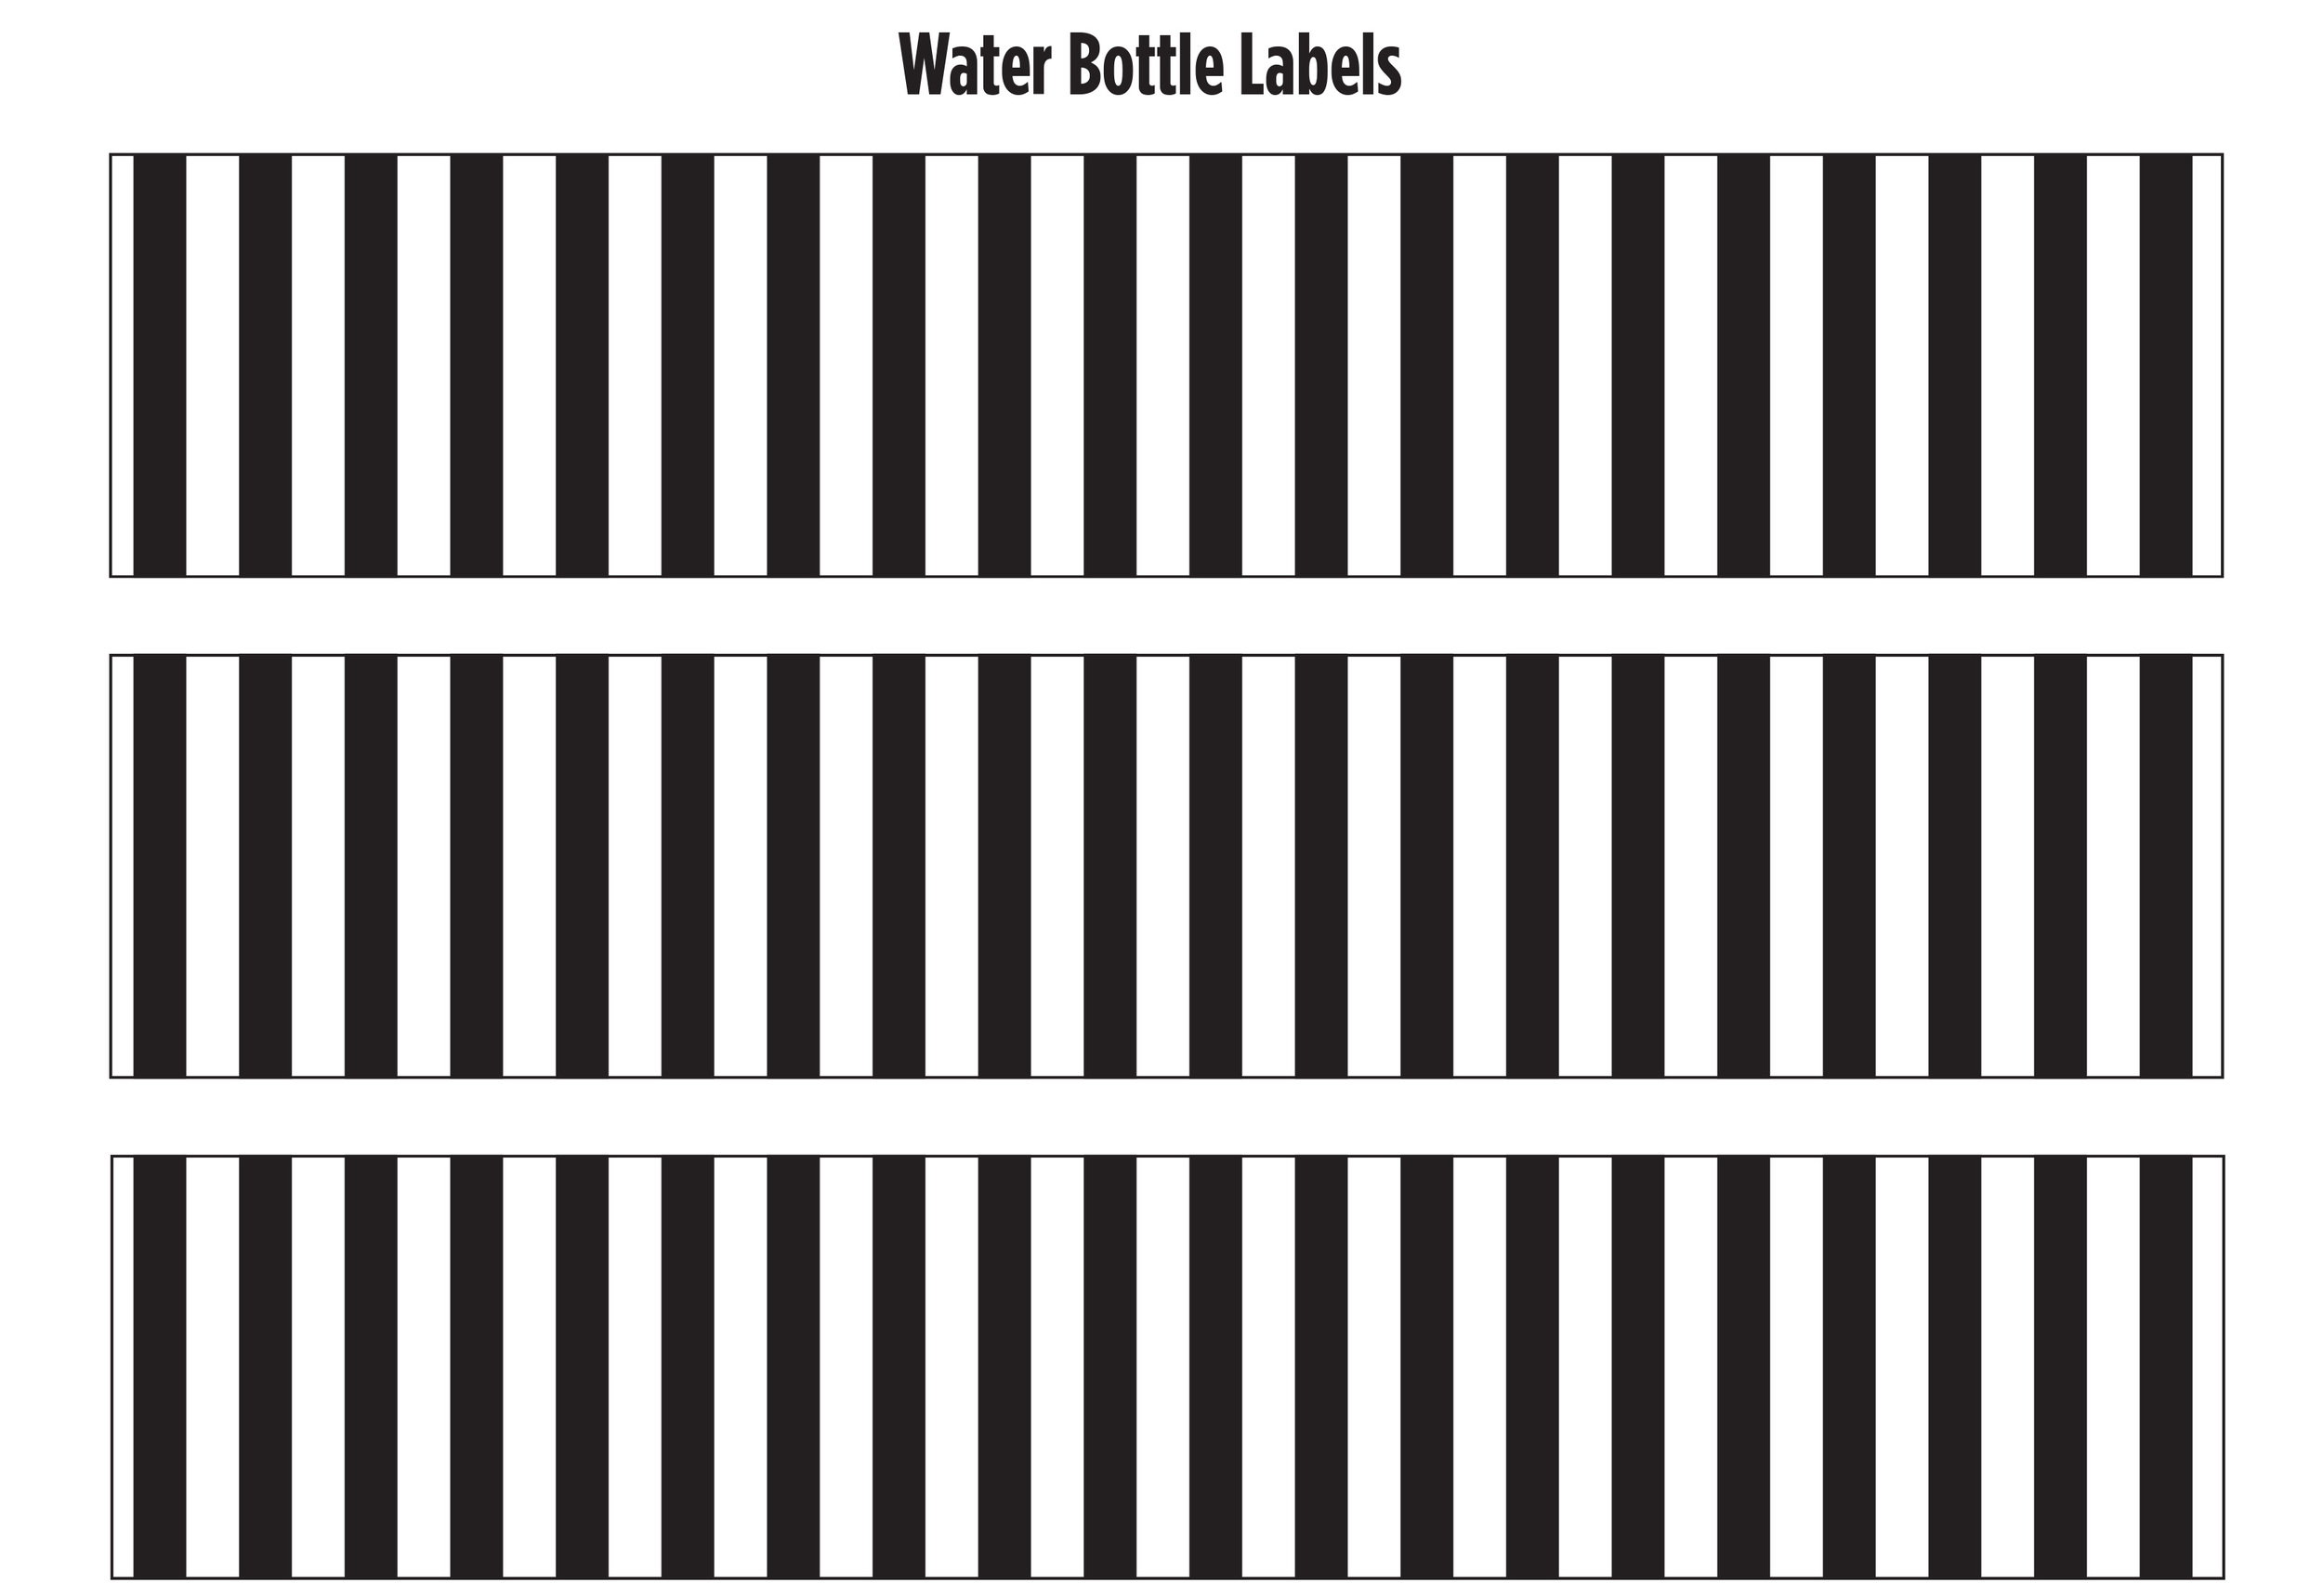 WaterBottleLabels.jpg